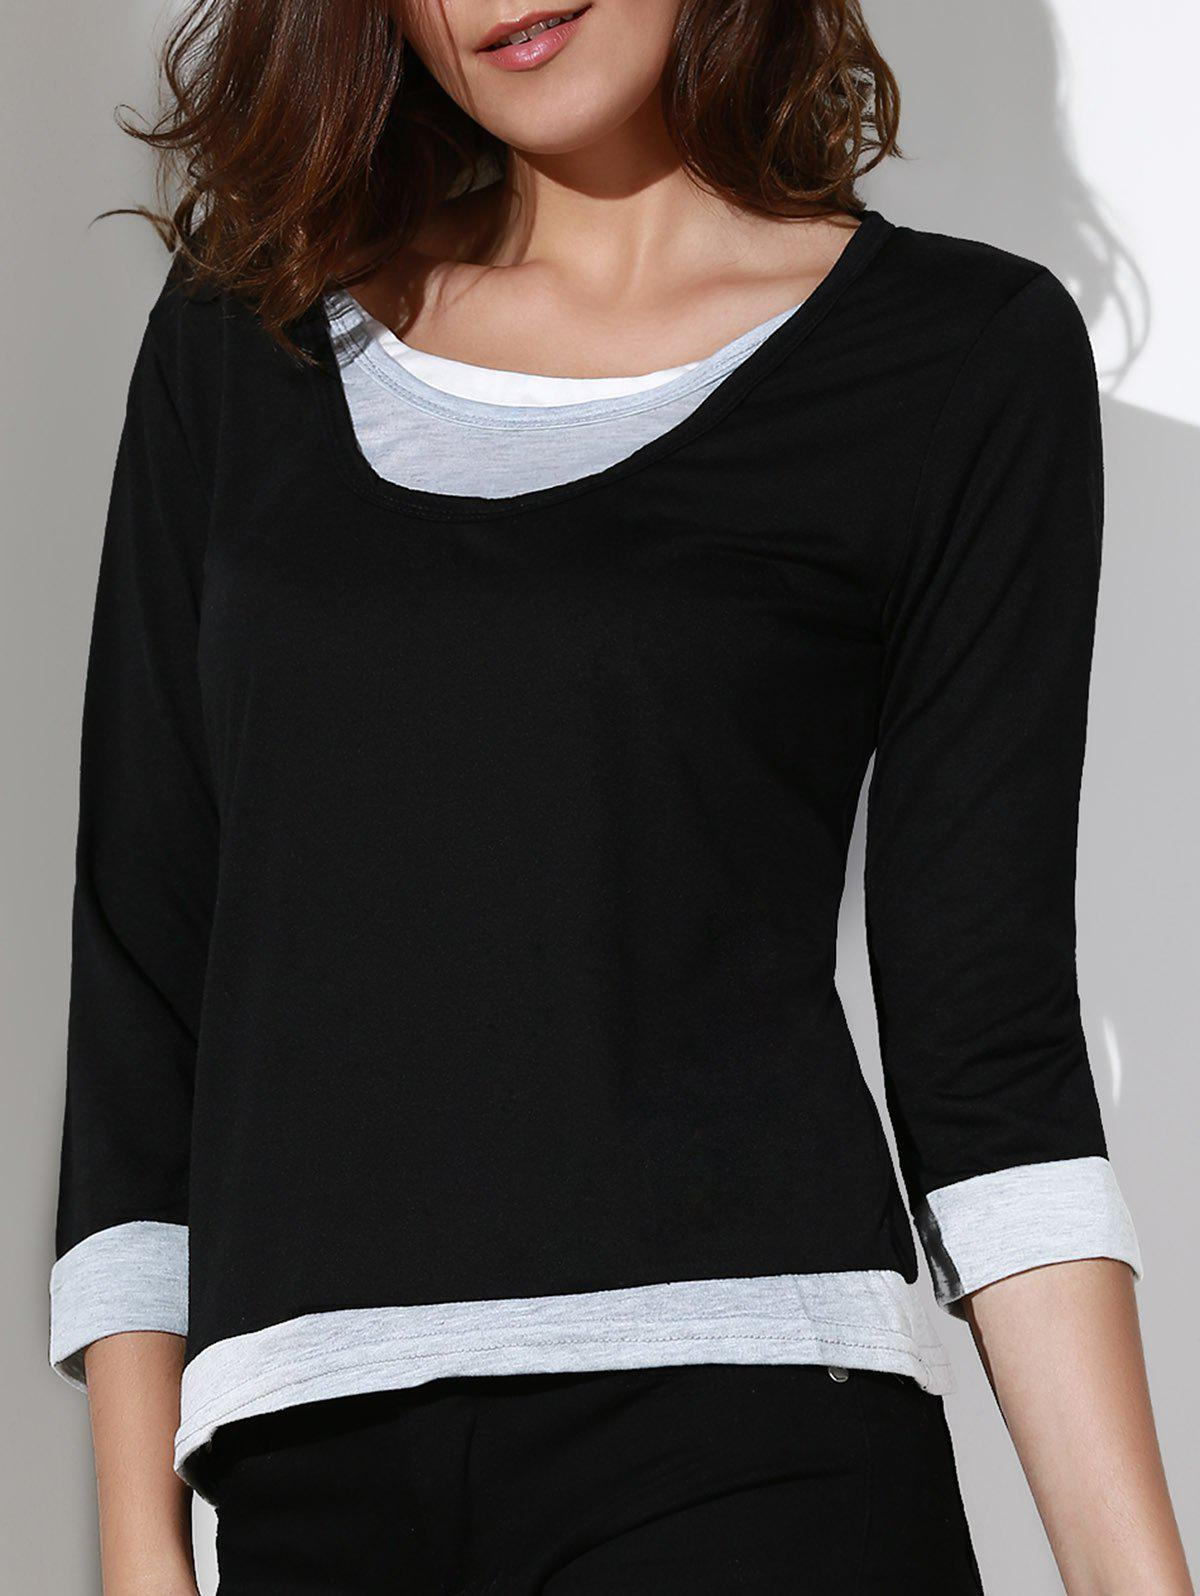 Casual Women's Scoop Neck Color Spliced 3/4 Sleeve T-Shirt